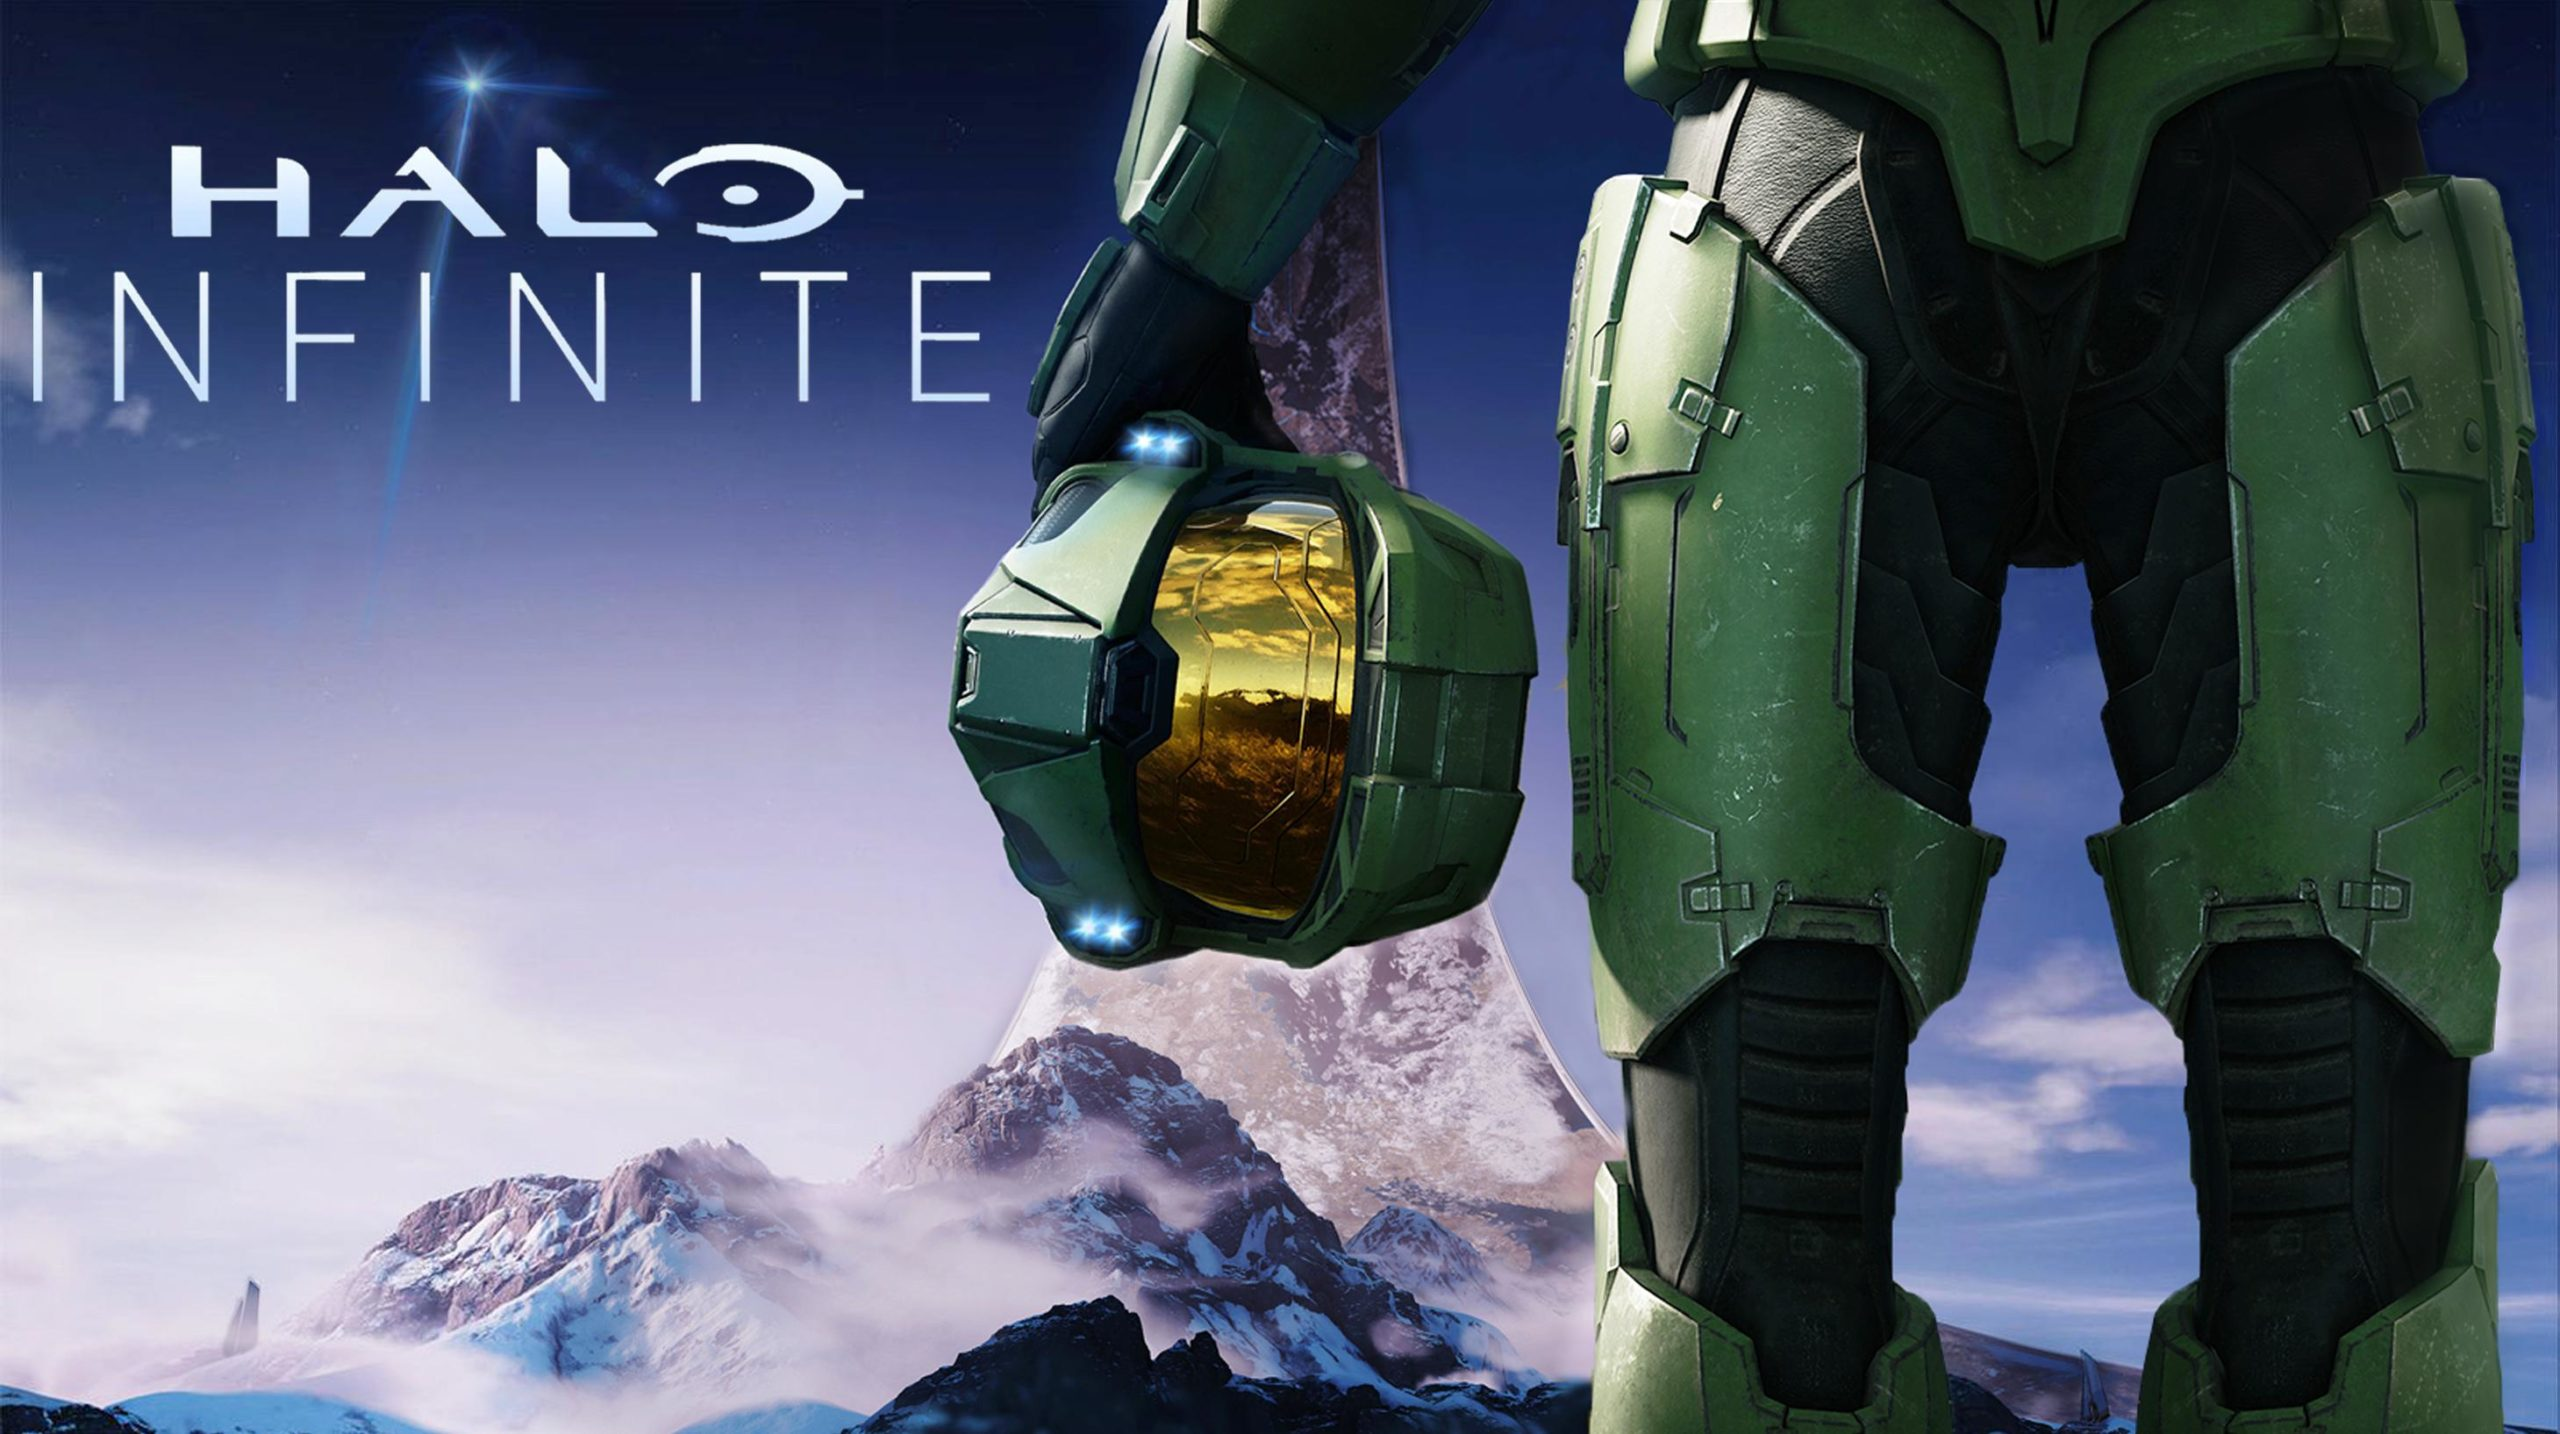 Halo Infinite Release Date with Xbox Series X